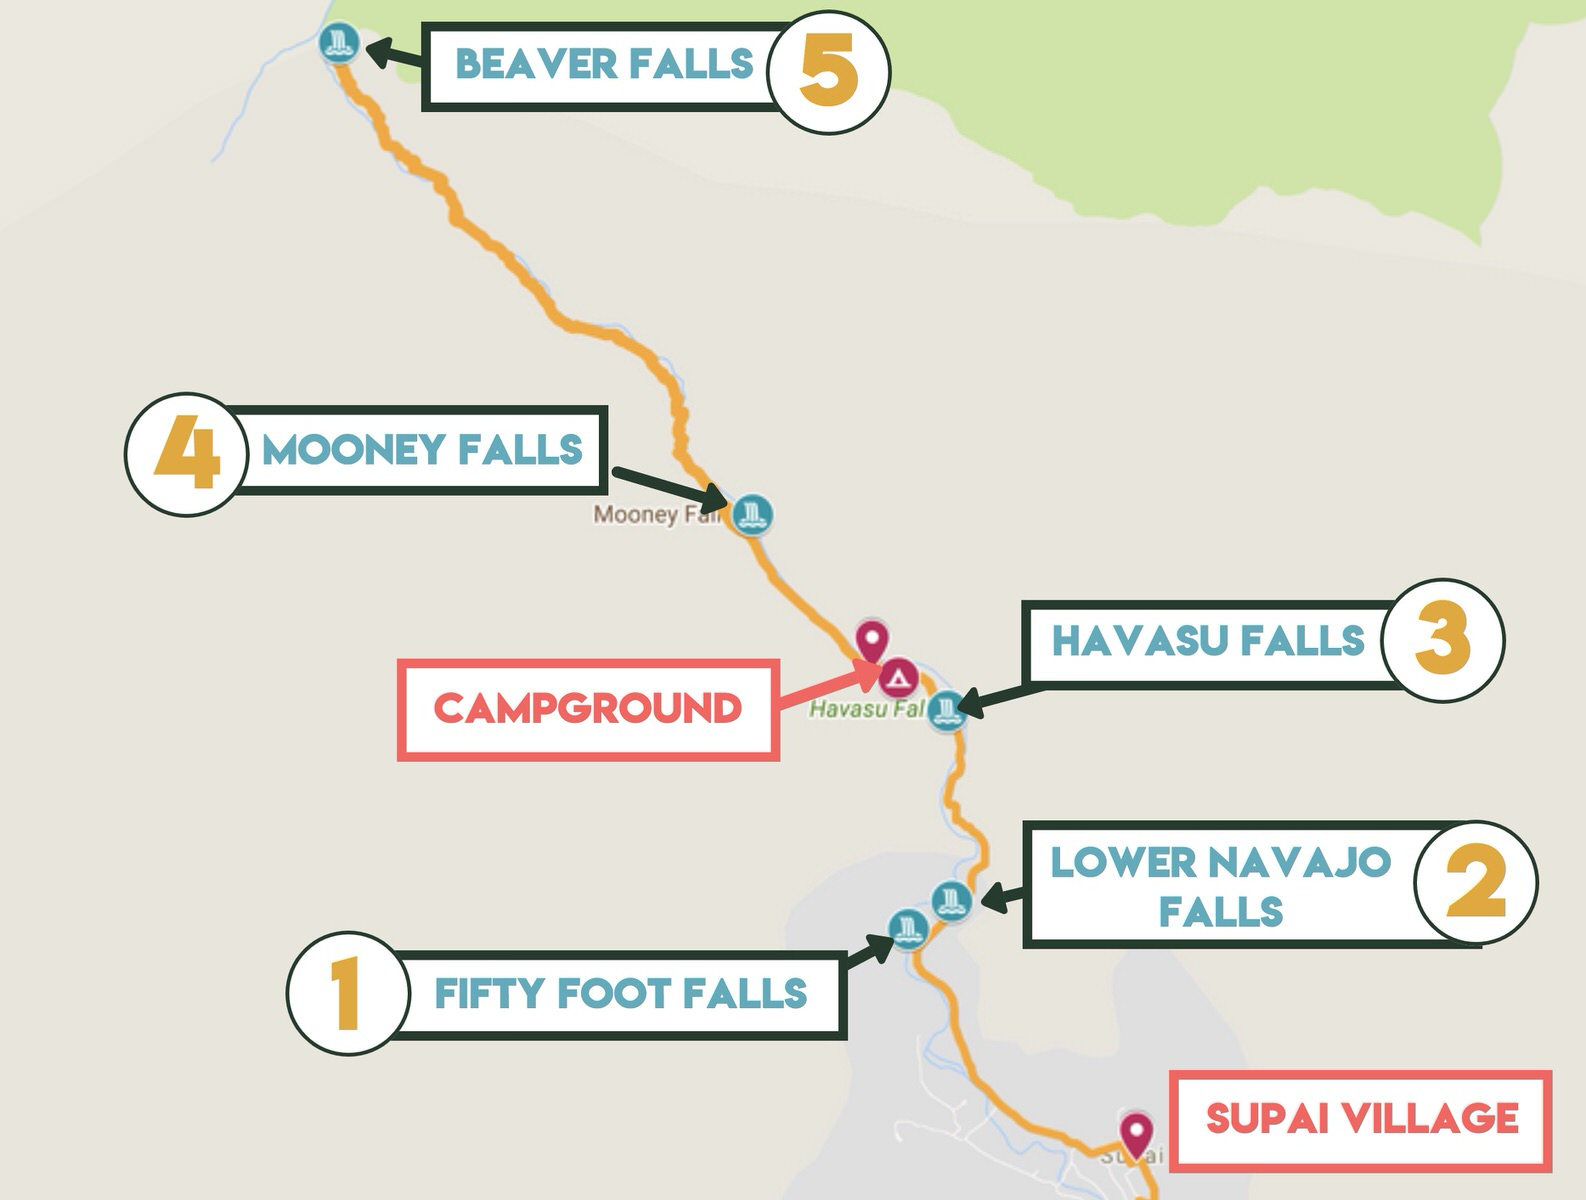 The ULTIMATE Guide to the Havasu Falls Hike in 2019